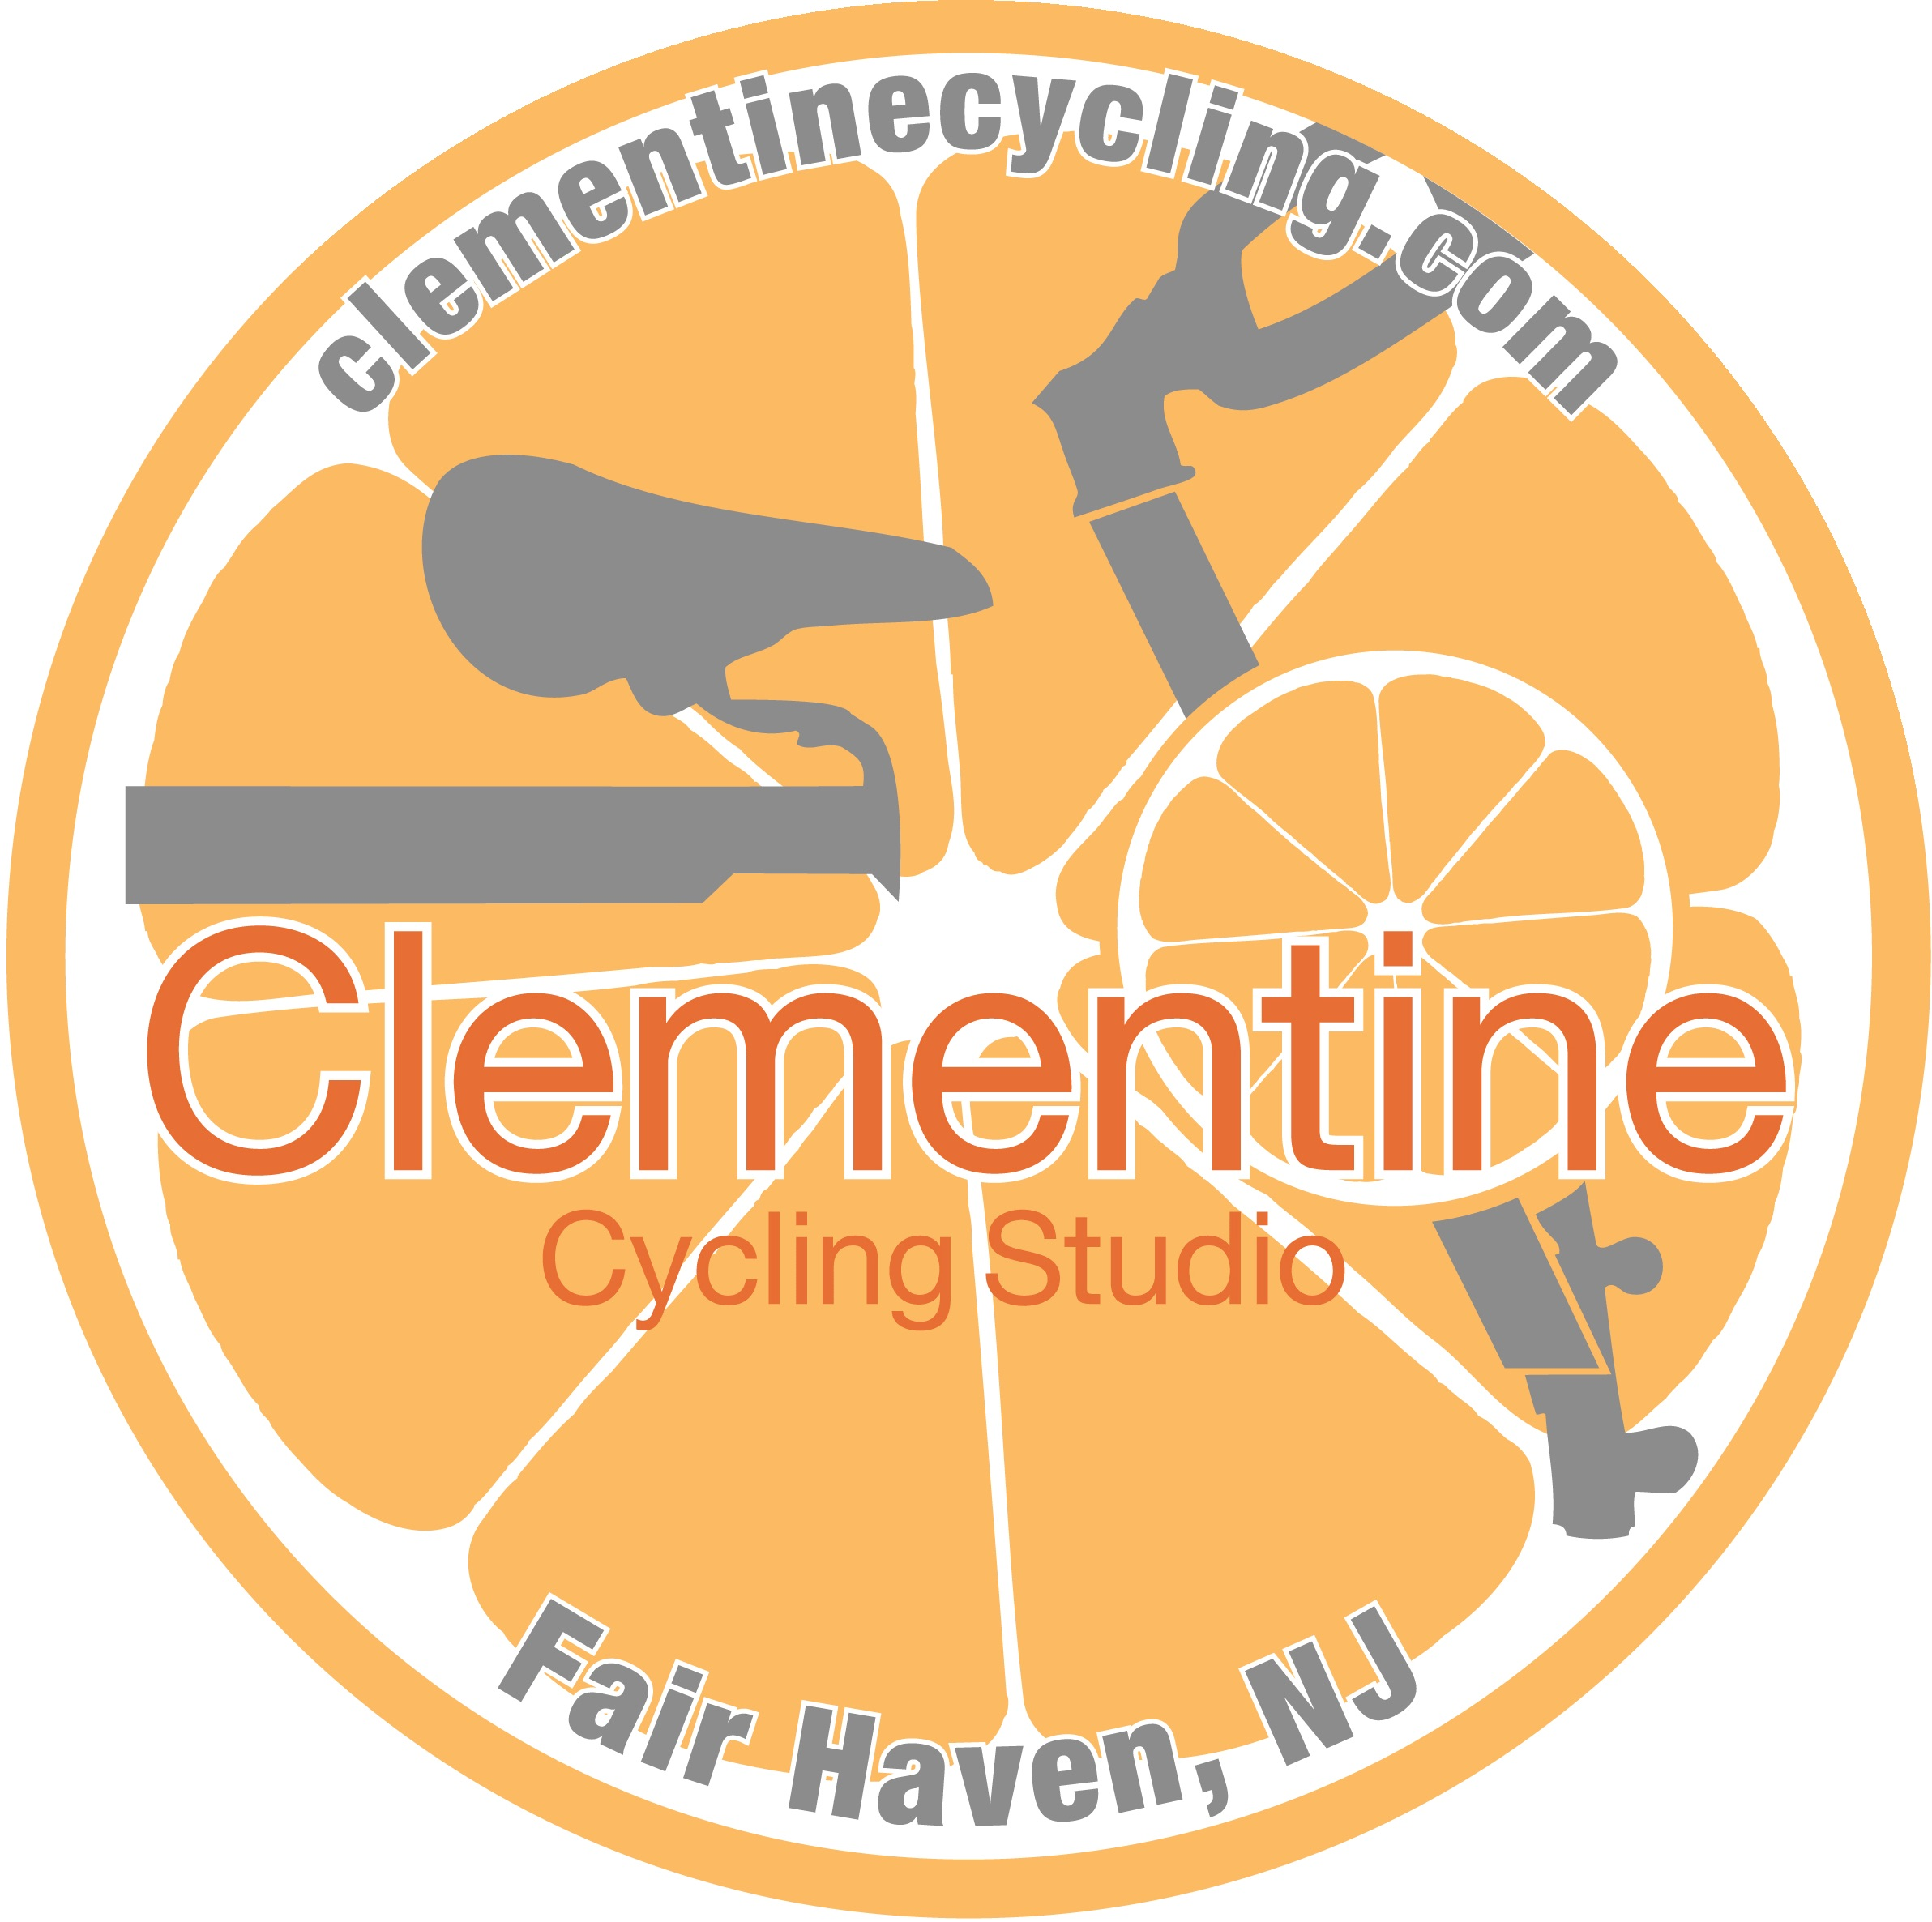 https://www.clementinecycling.com/